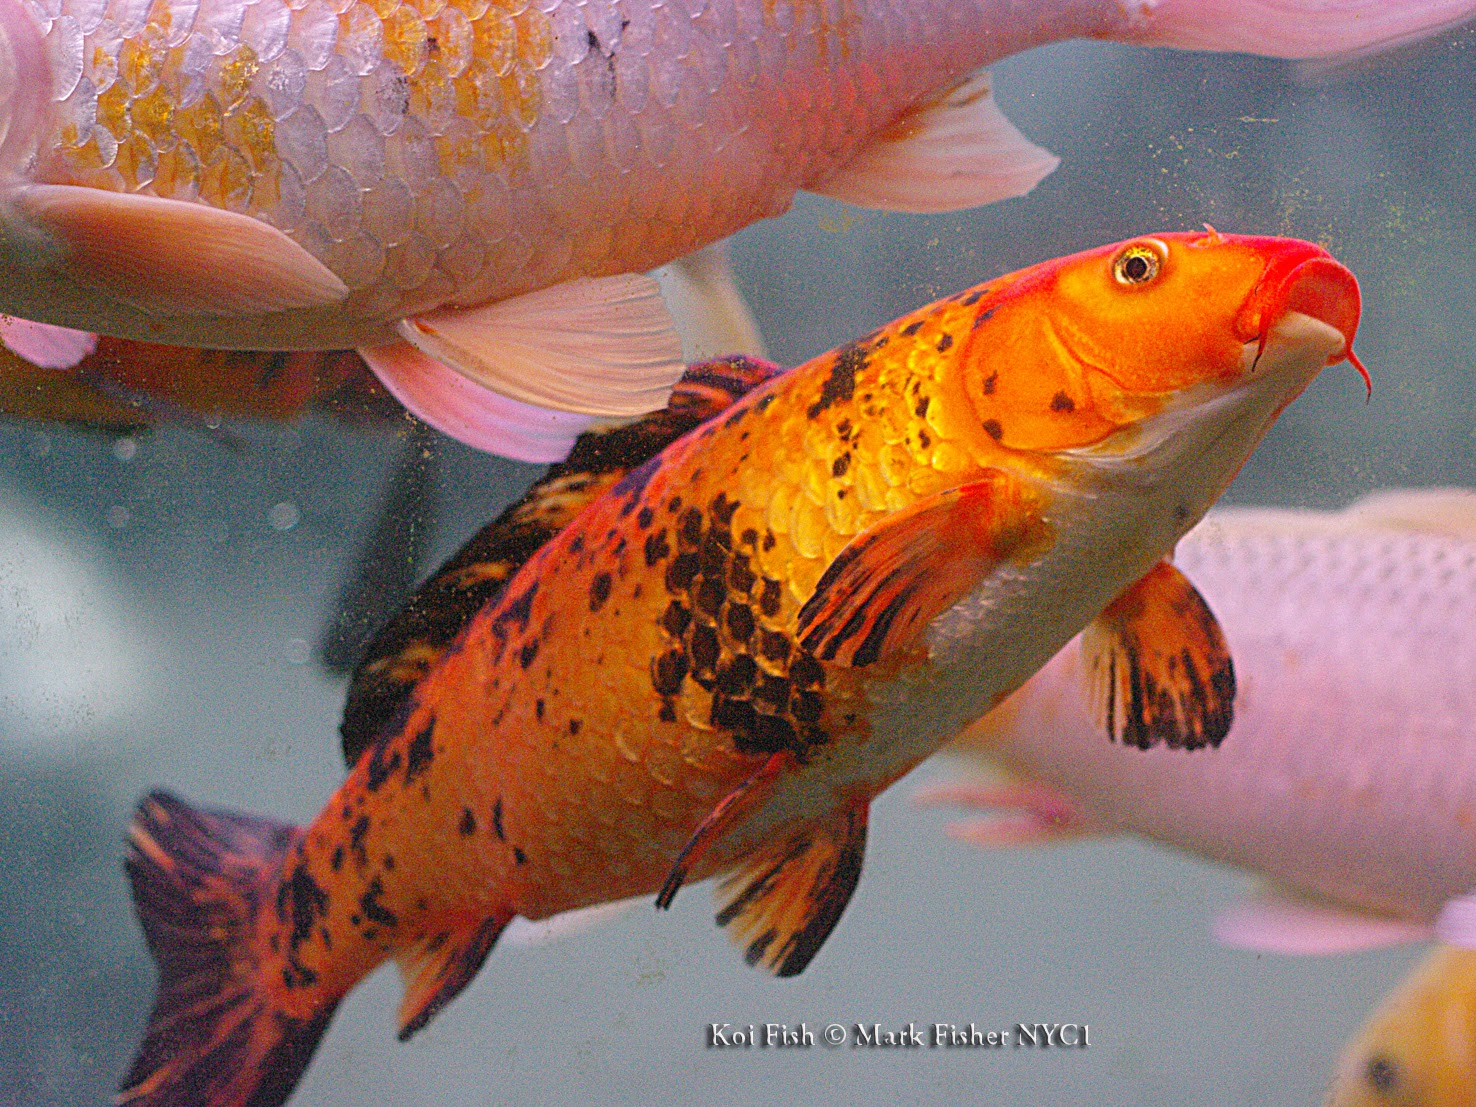 Mark fisher american photographer koi fish american for Koi carp fish information